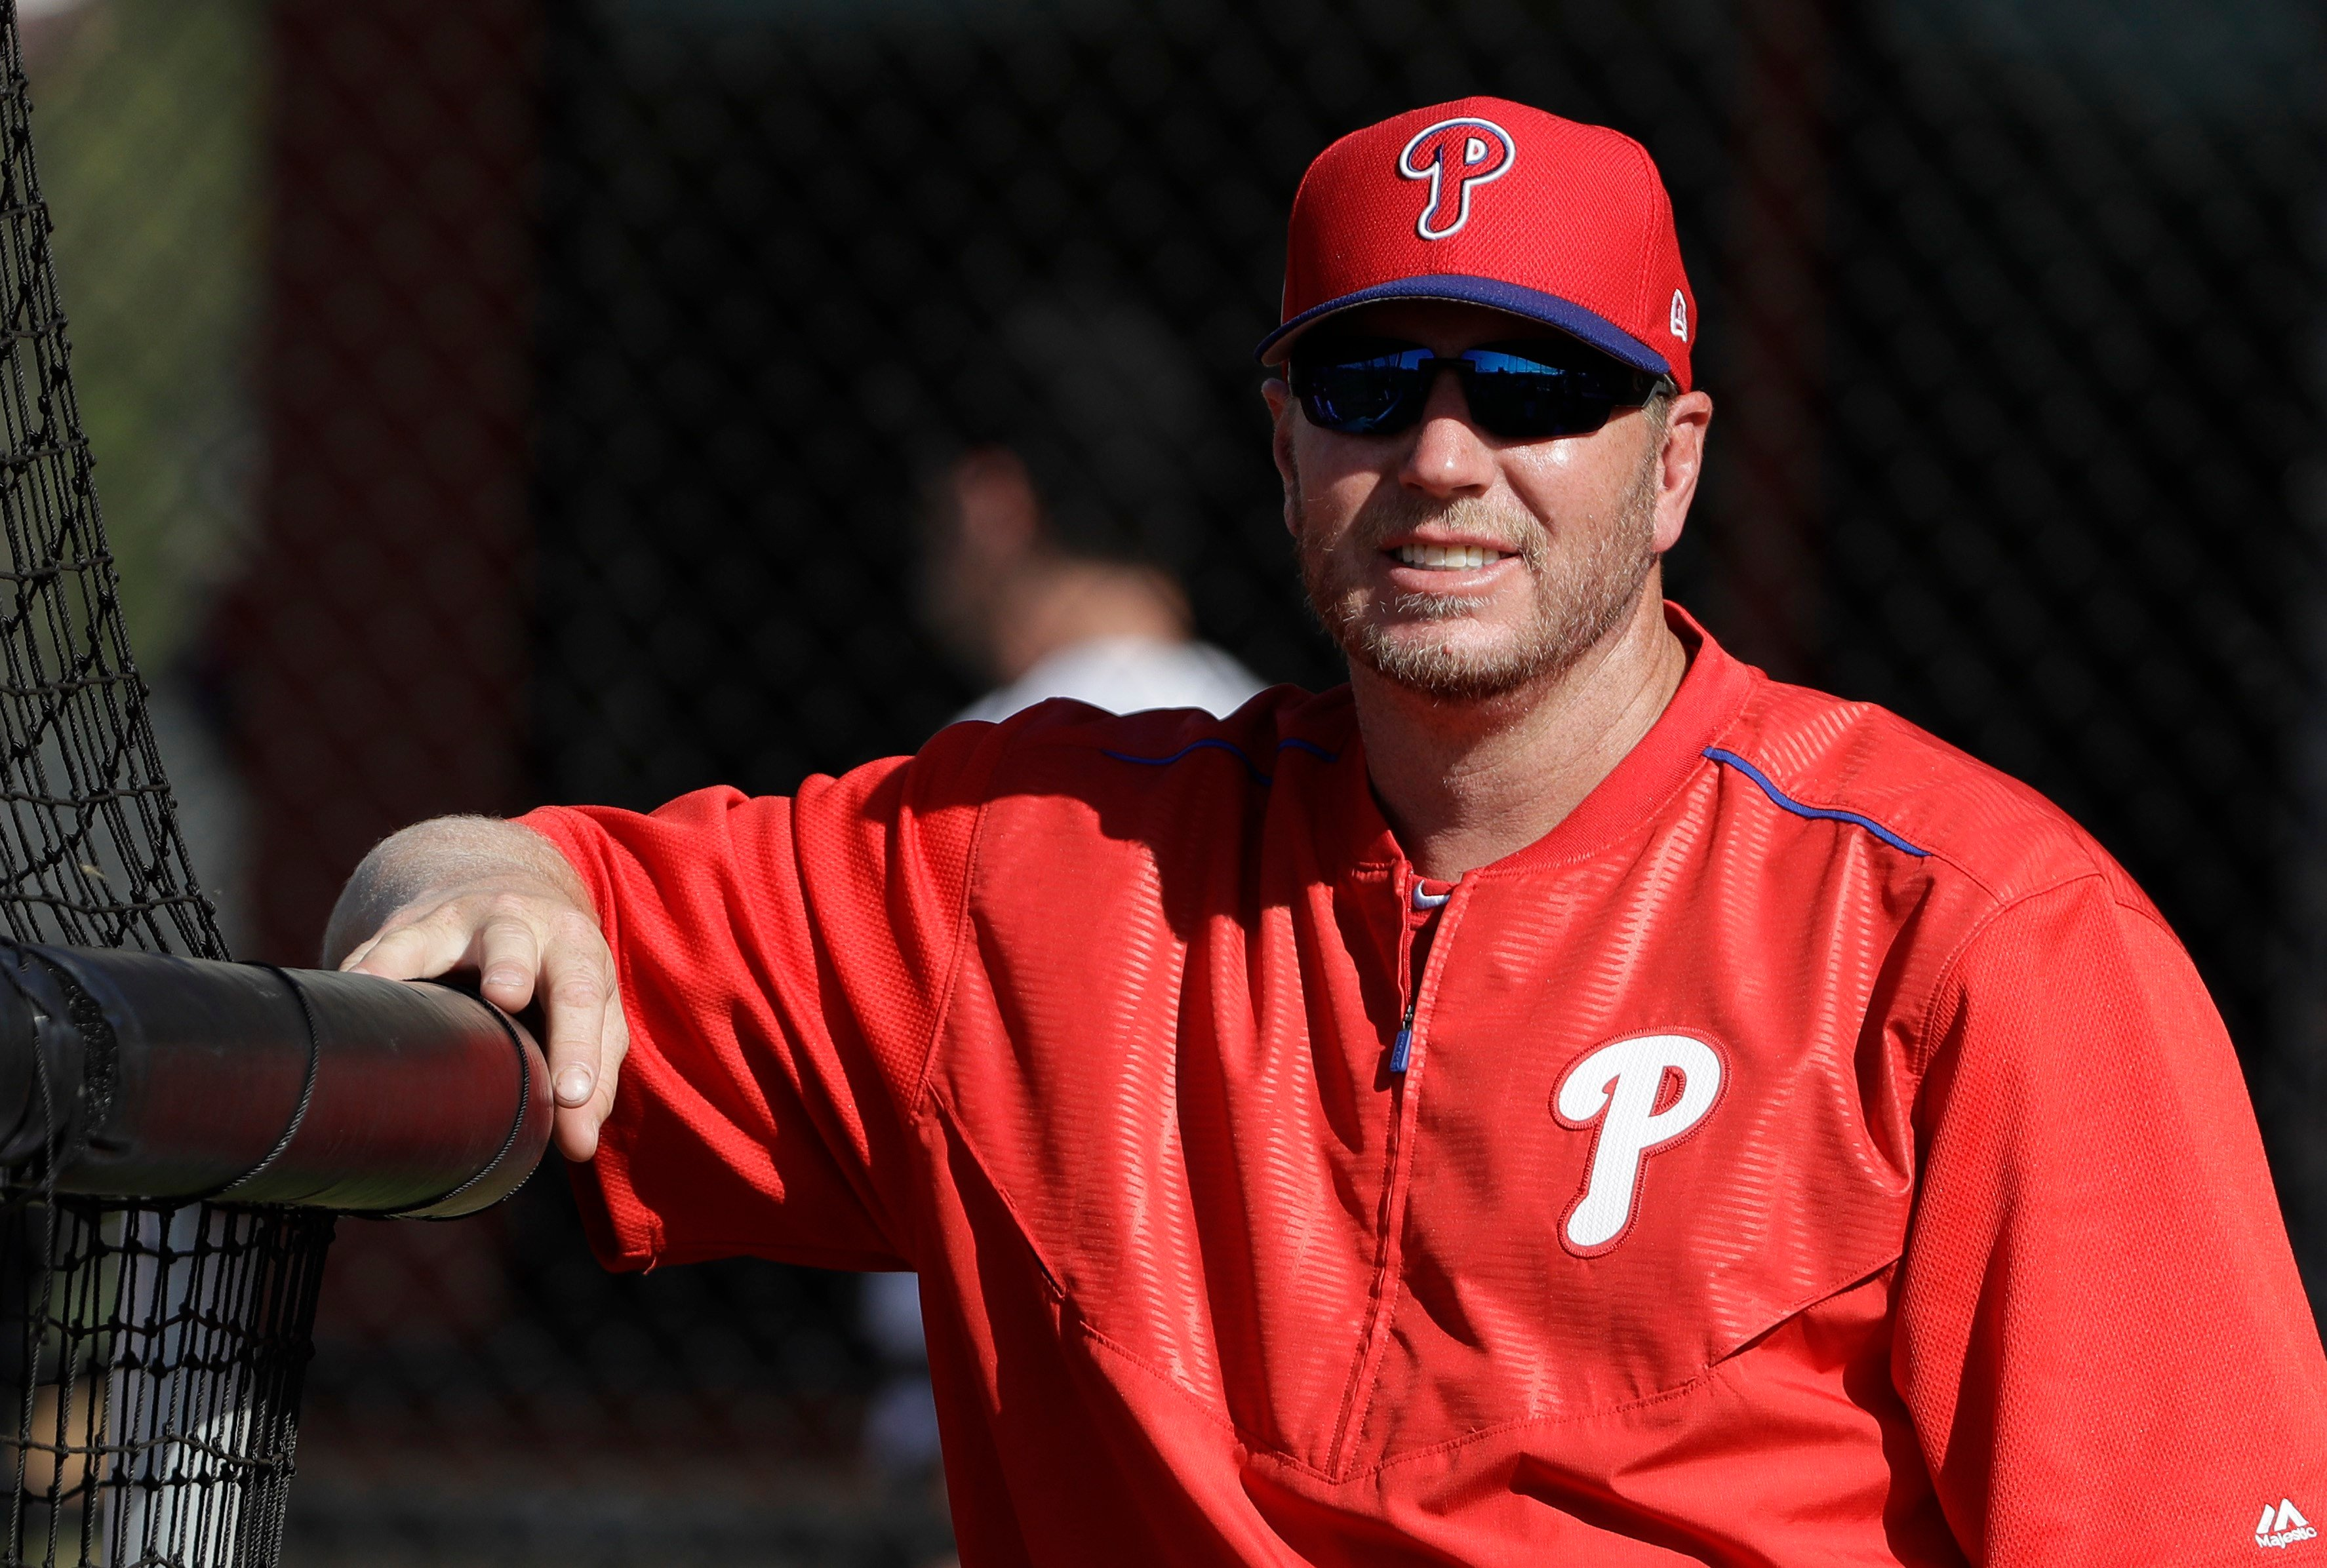 Roy Halladay autopsy shows he had Ambien, amphetamines and morphine in system